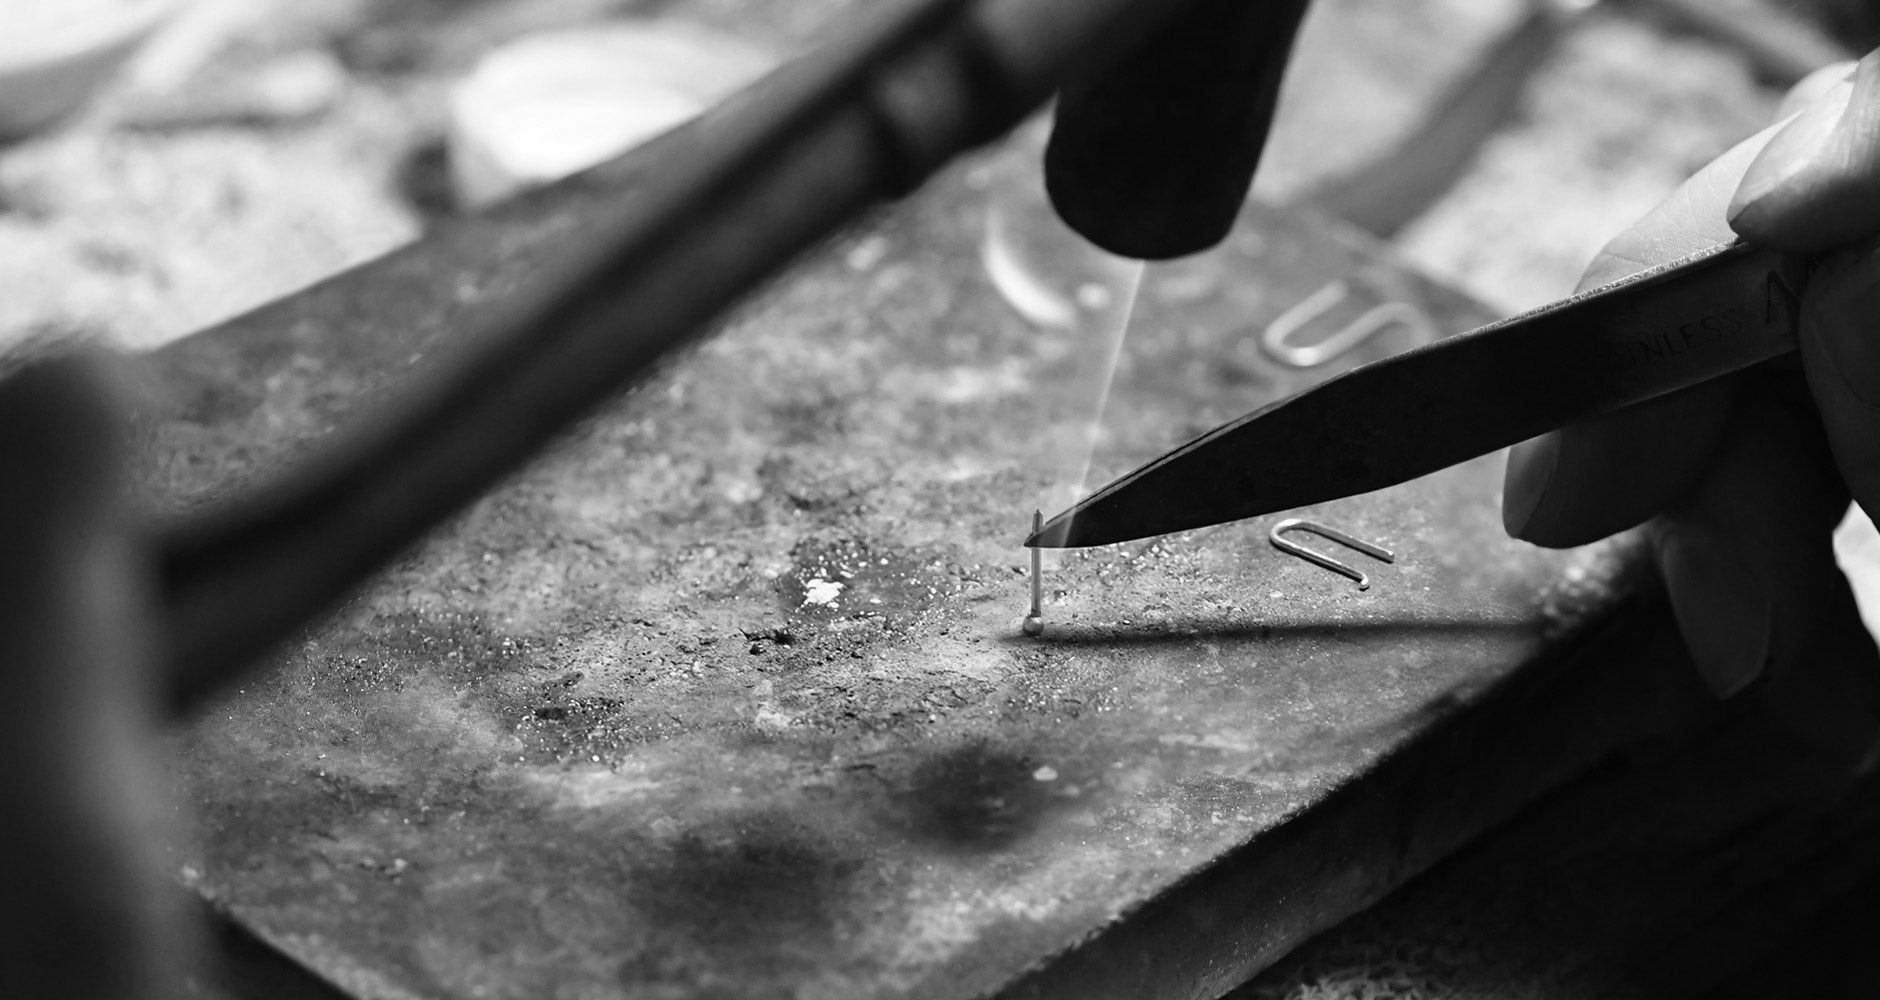 jeweler hands working on littionary's dot earrings